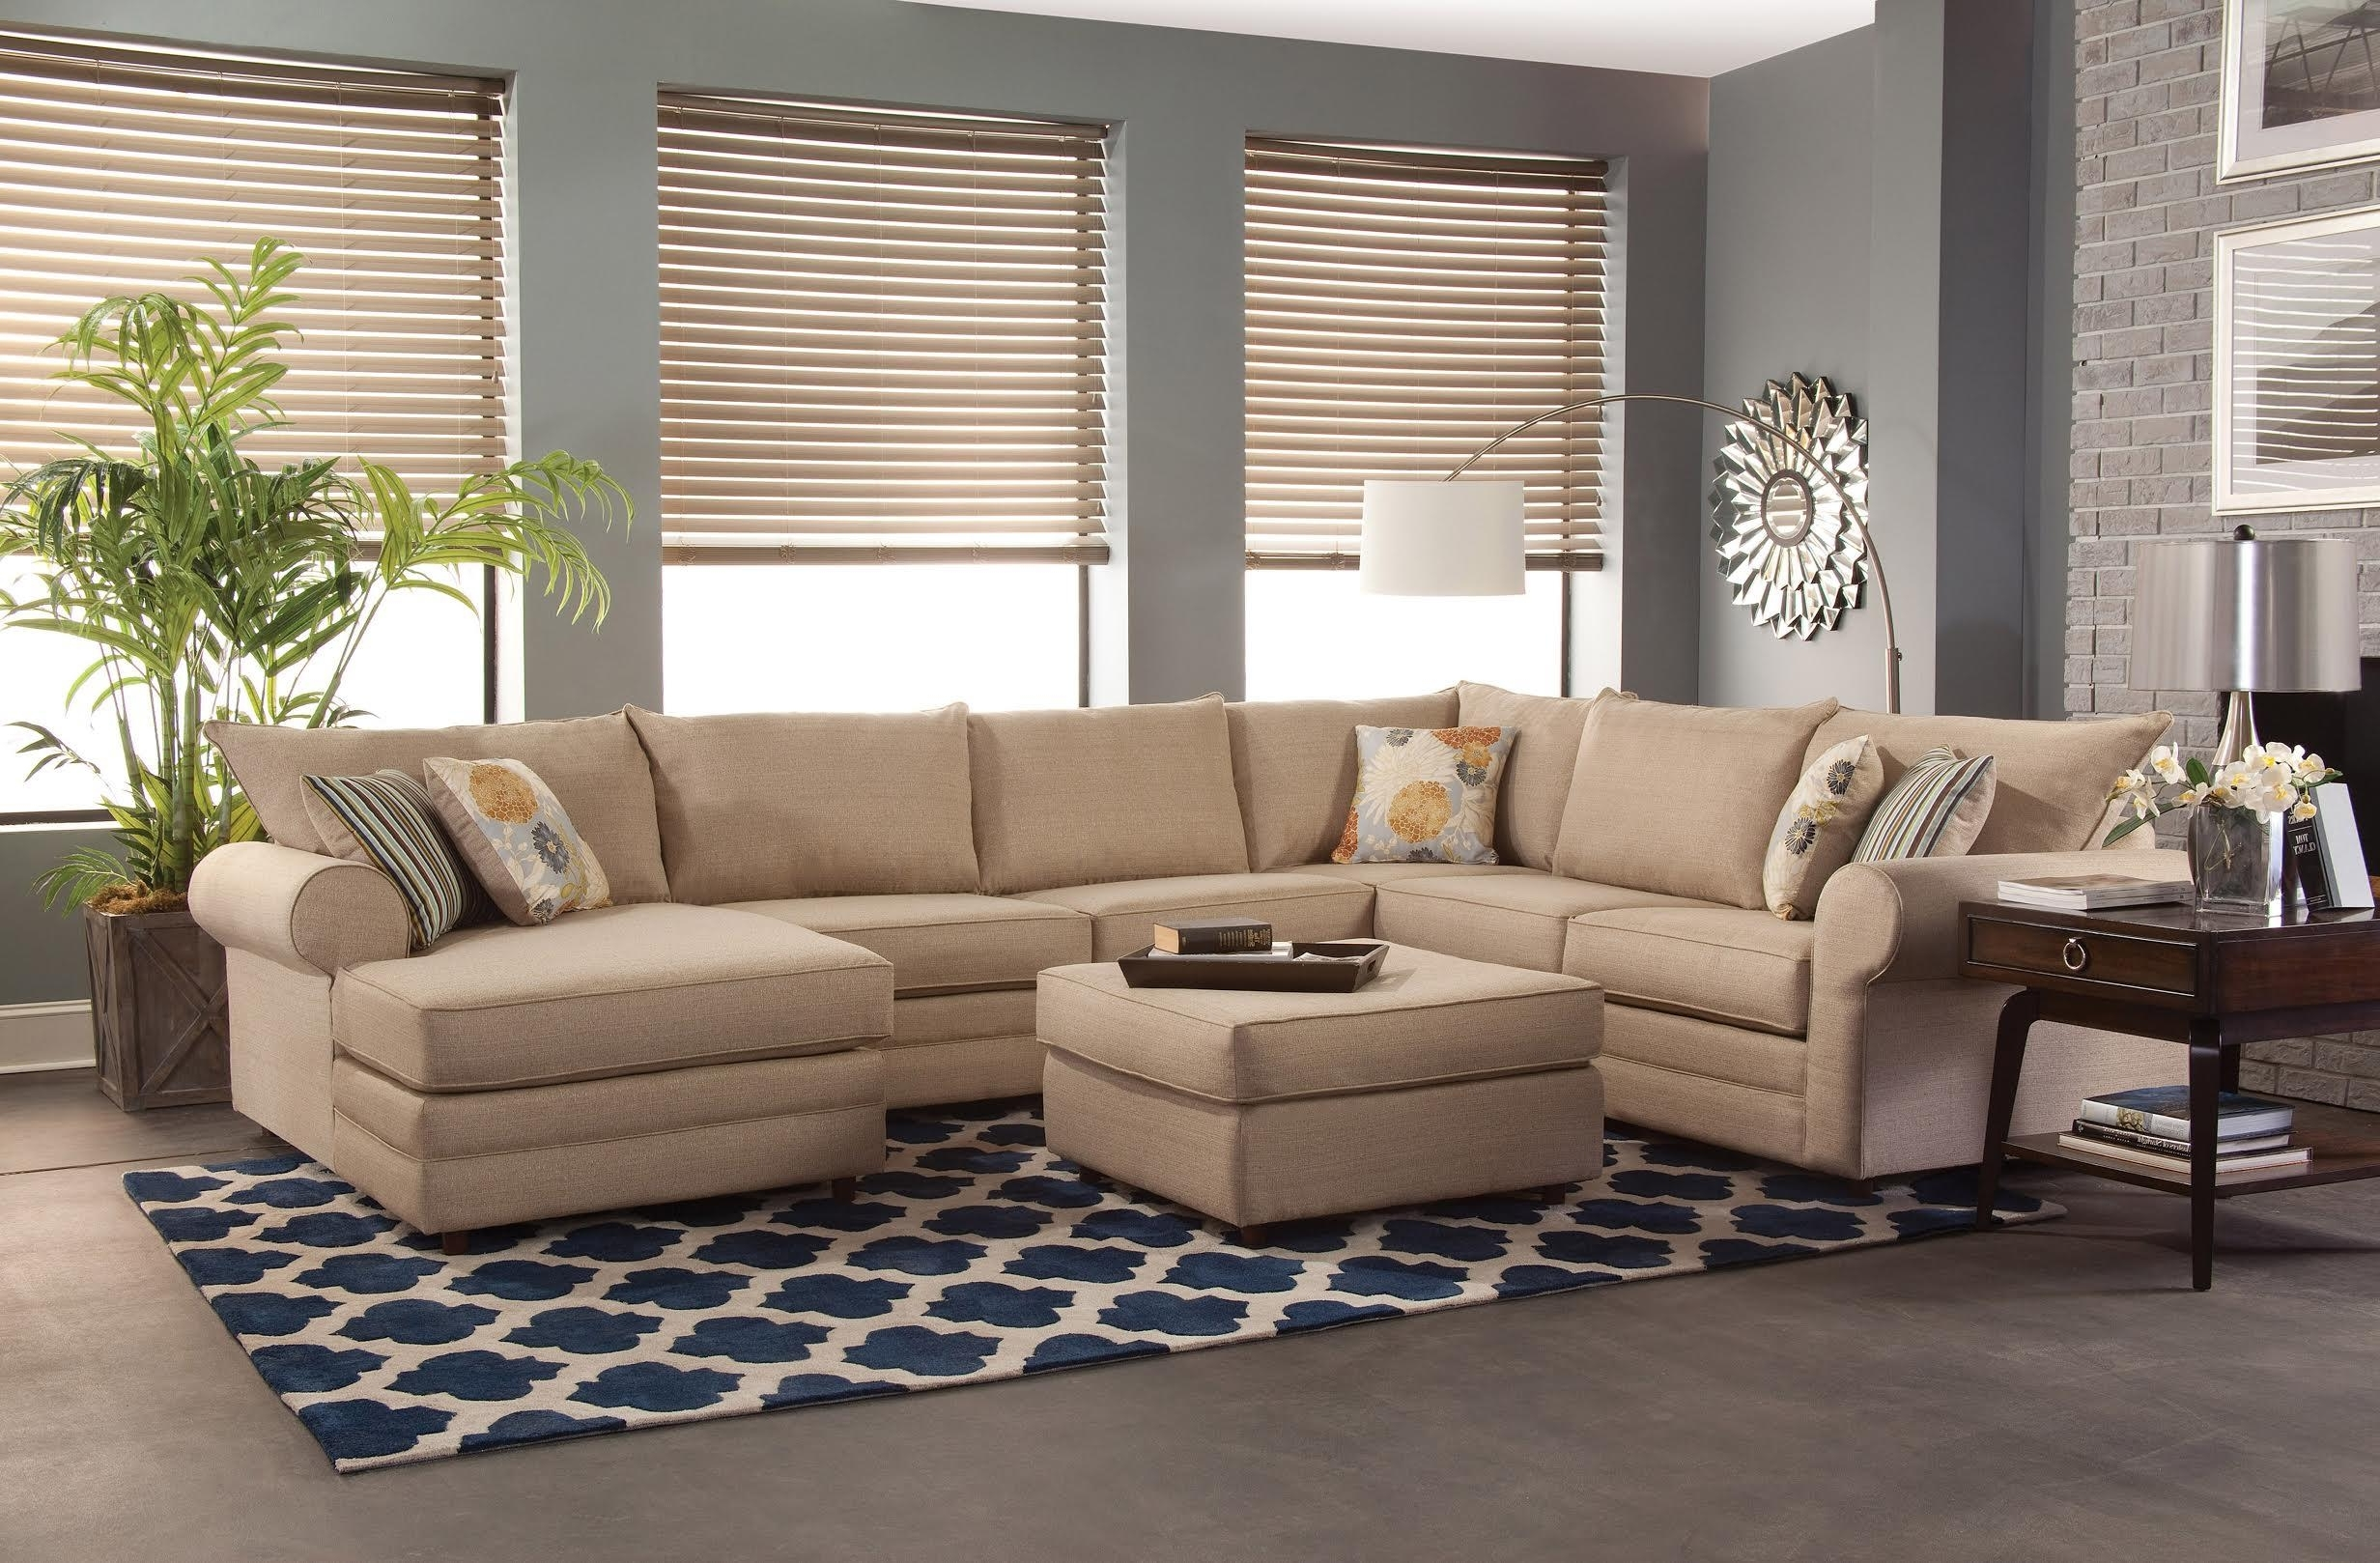 Clubanfi In Cozy Sectional Sofas (View 1 of 20)